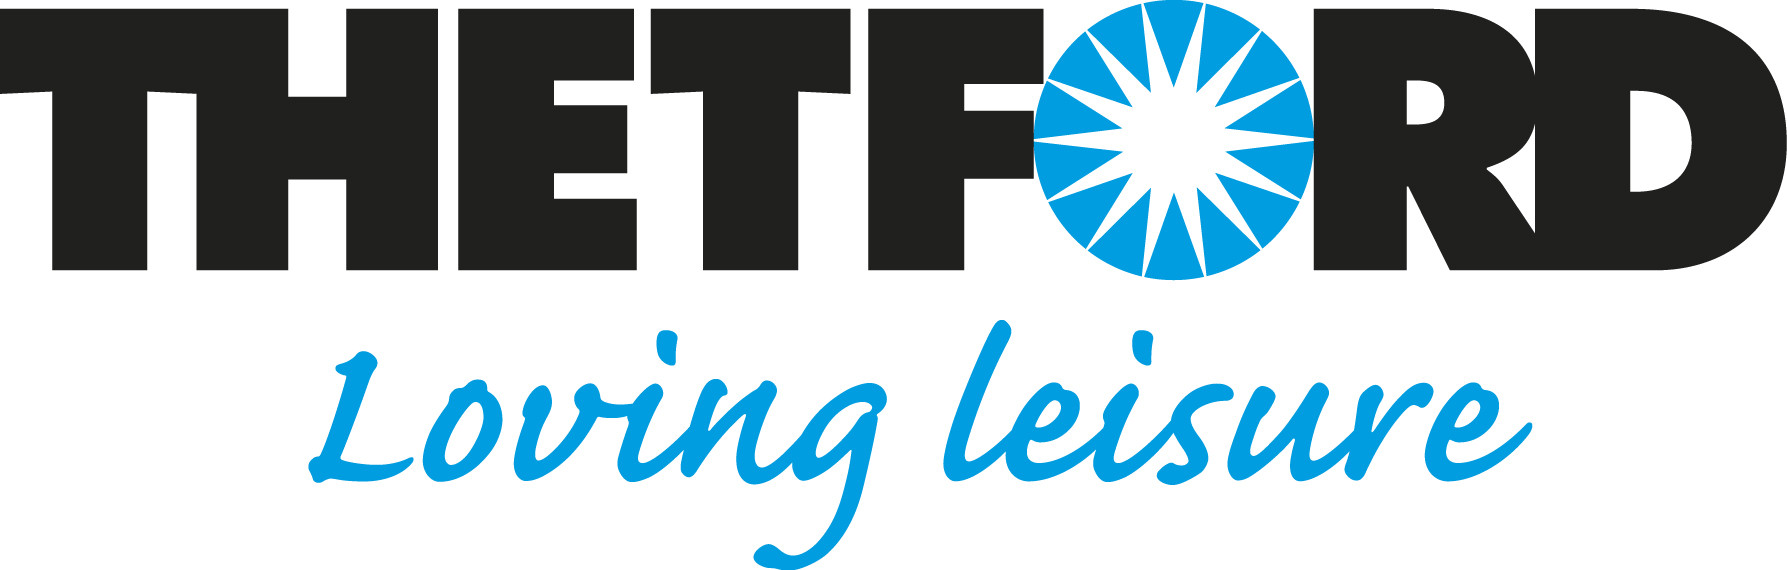 Thetford-Logo-Loving-Leisure.jpg